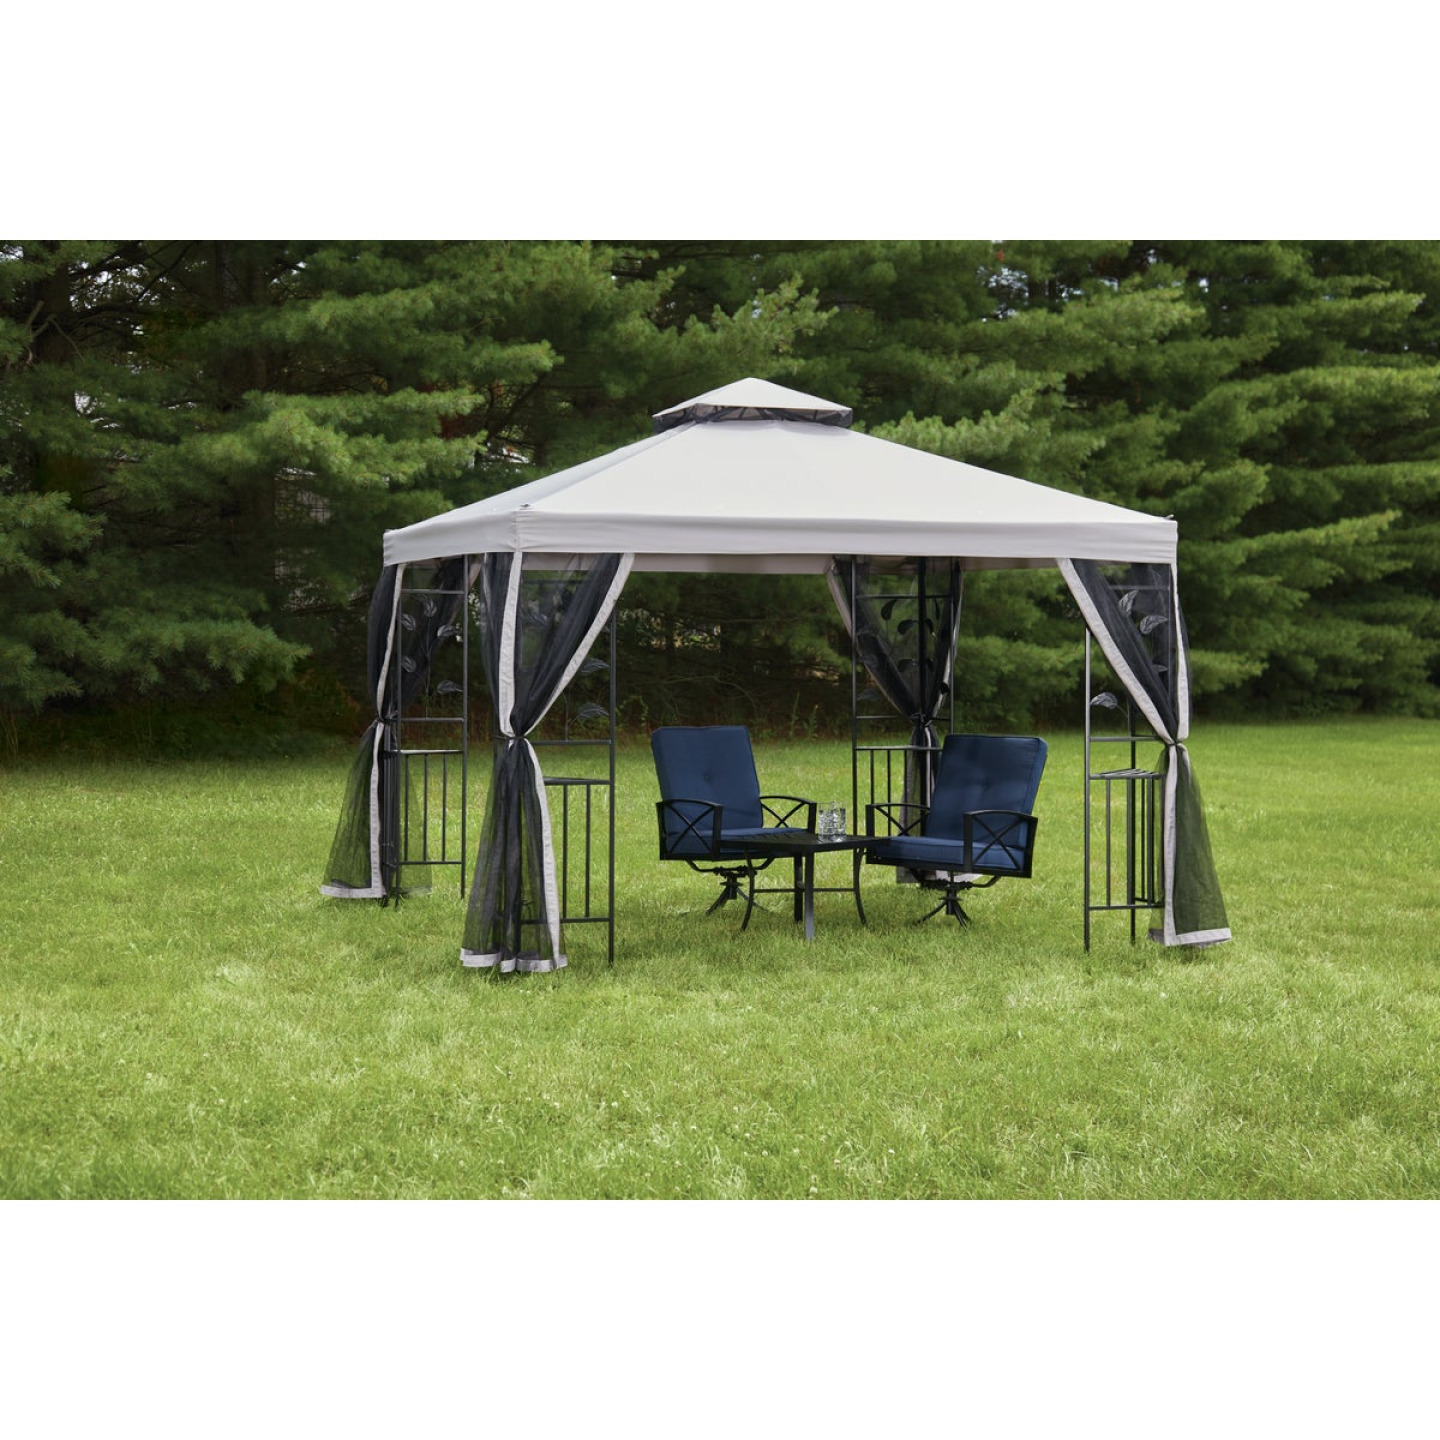 Outdoor Expressions 10 Ft. x 10 Ft. Gray & Black Steel Gazebo with Sides Image 3